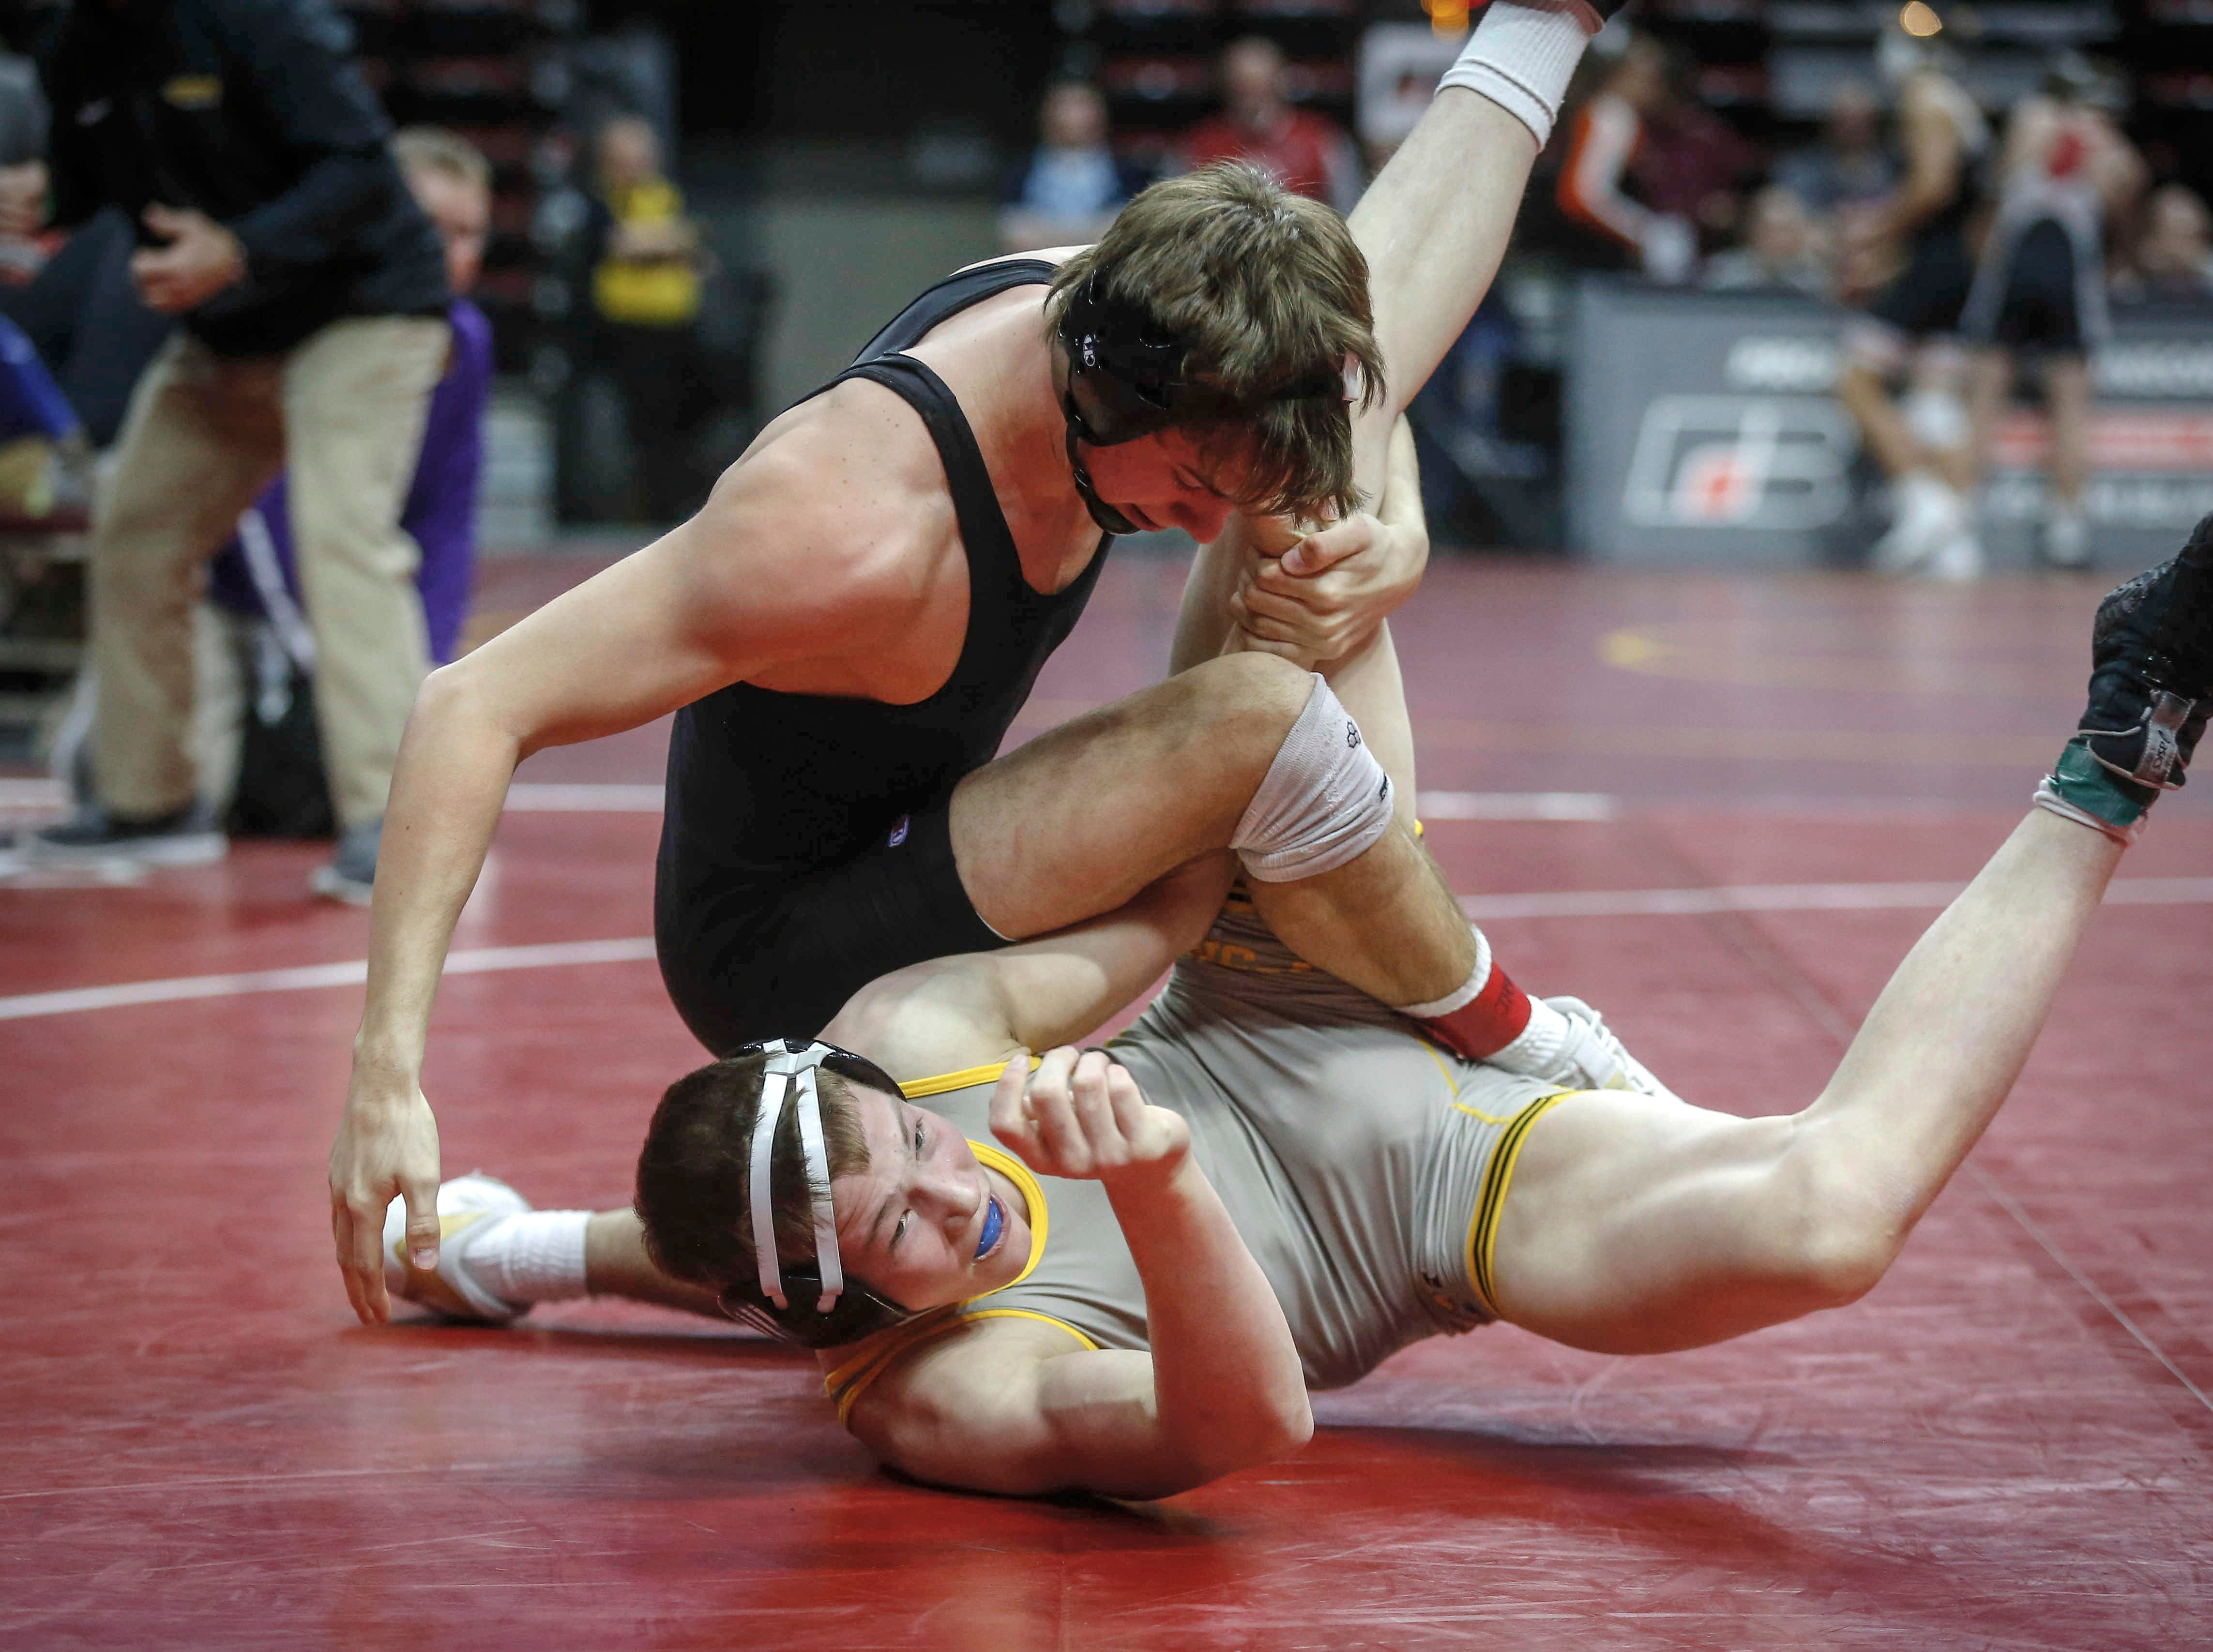 Johnston senior Cade Moss breaks down Waverly-Shell Rock senior Bryson Hervol in their match at 152 pounds during the state wrestling quarterfinals on Friday, Feb. 15, 2019, at Wells Fargo Arena in Des Moines.